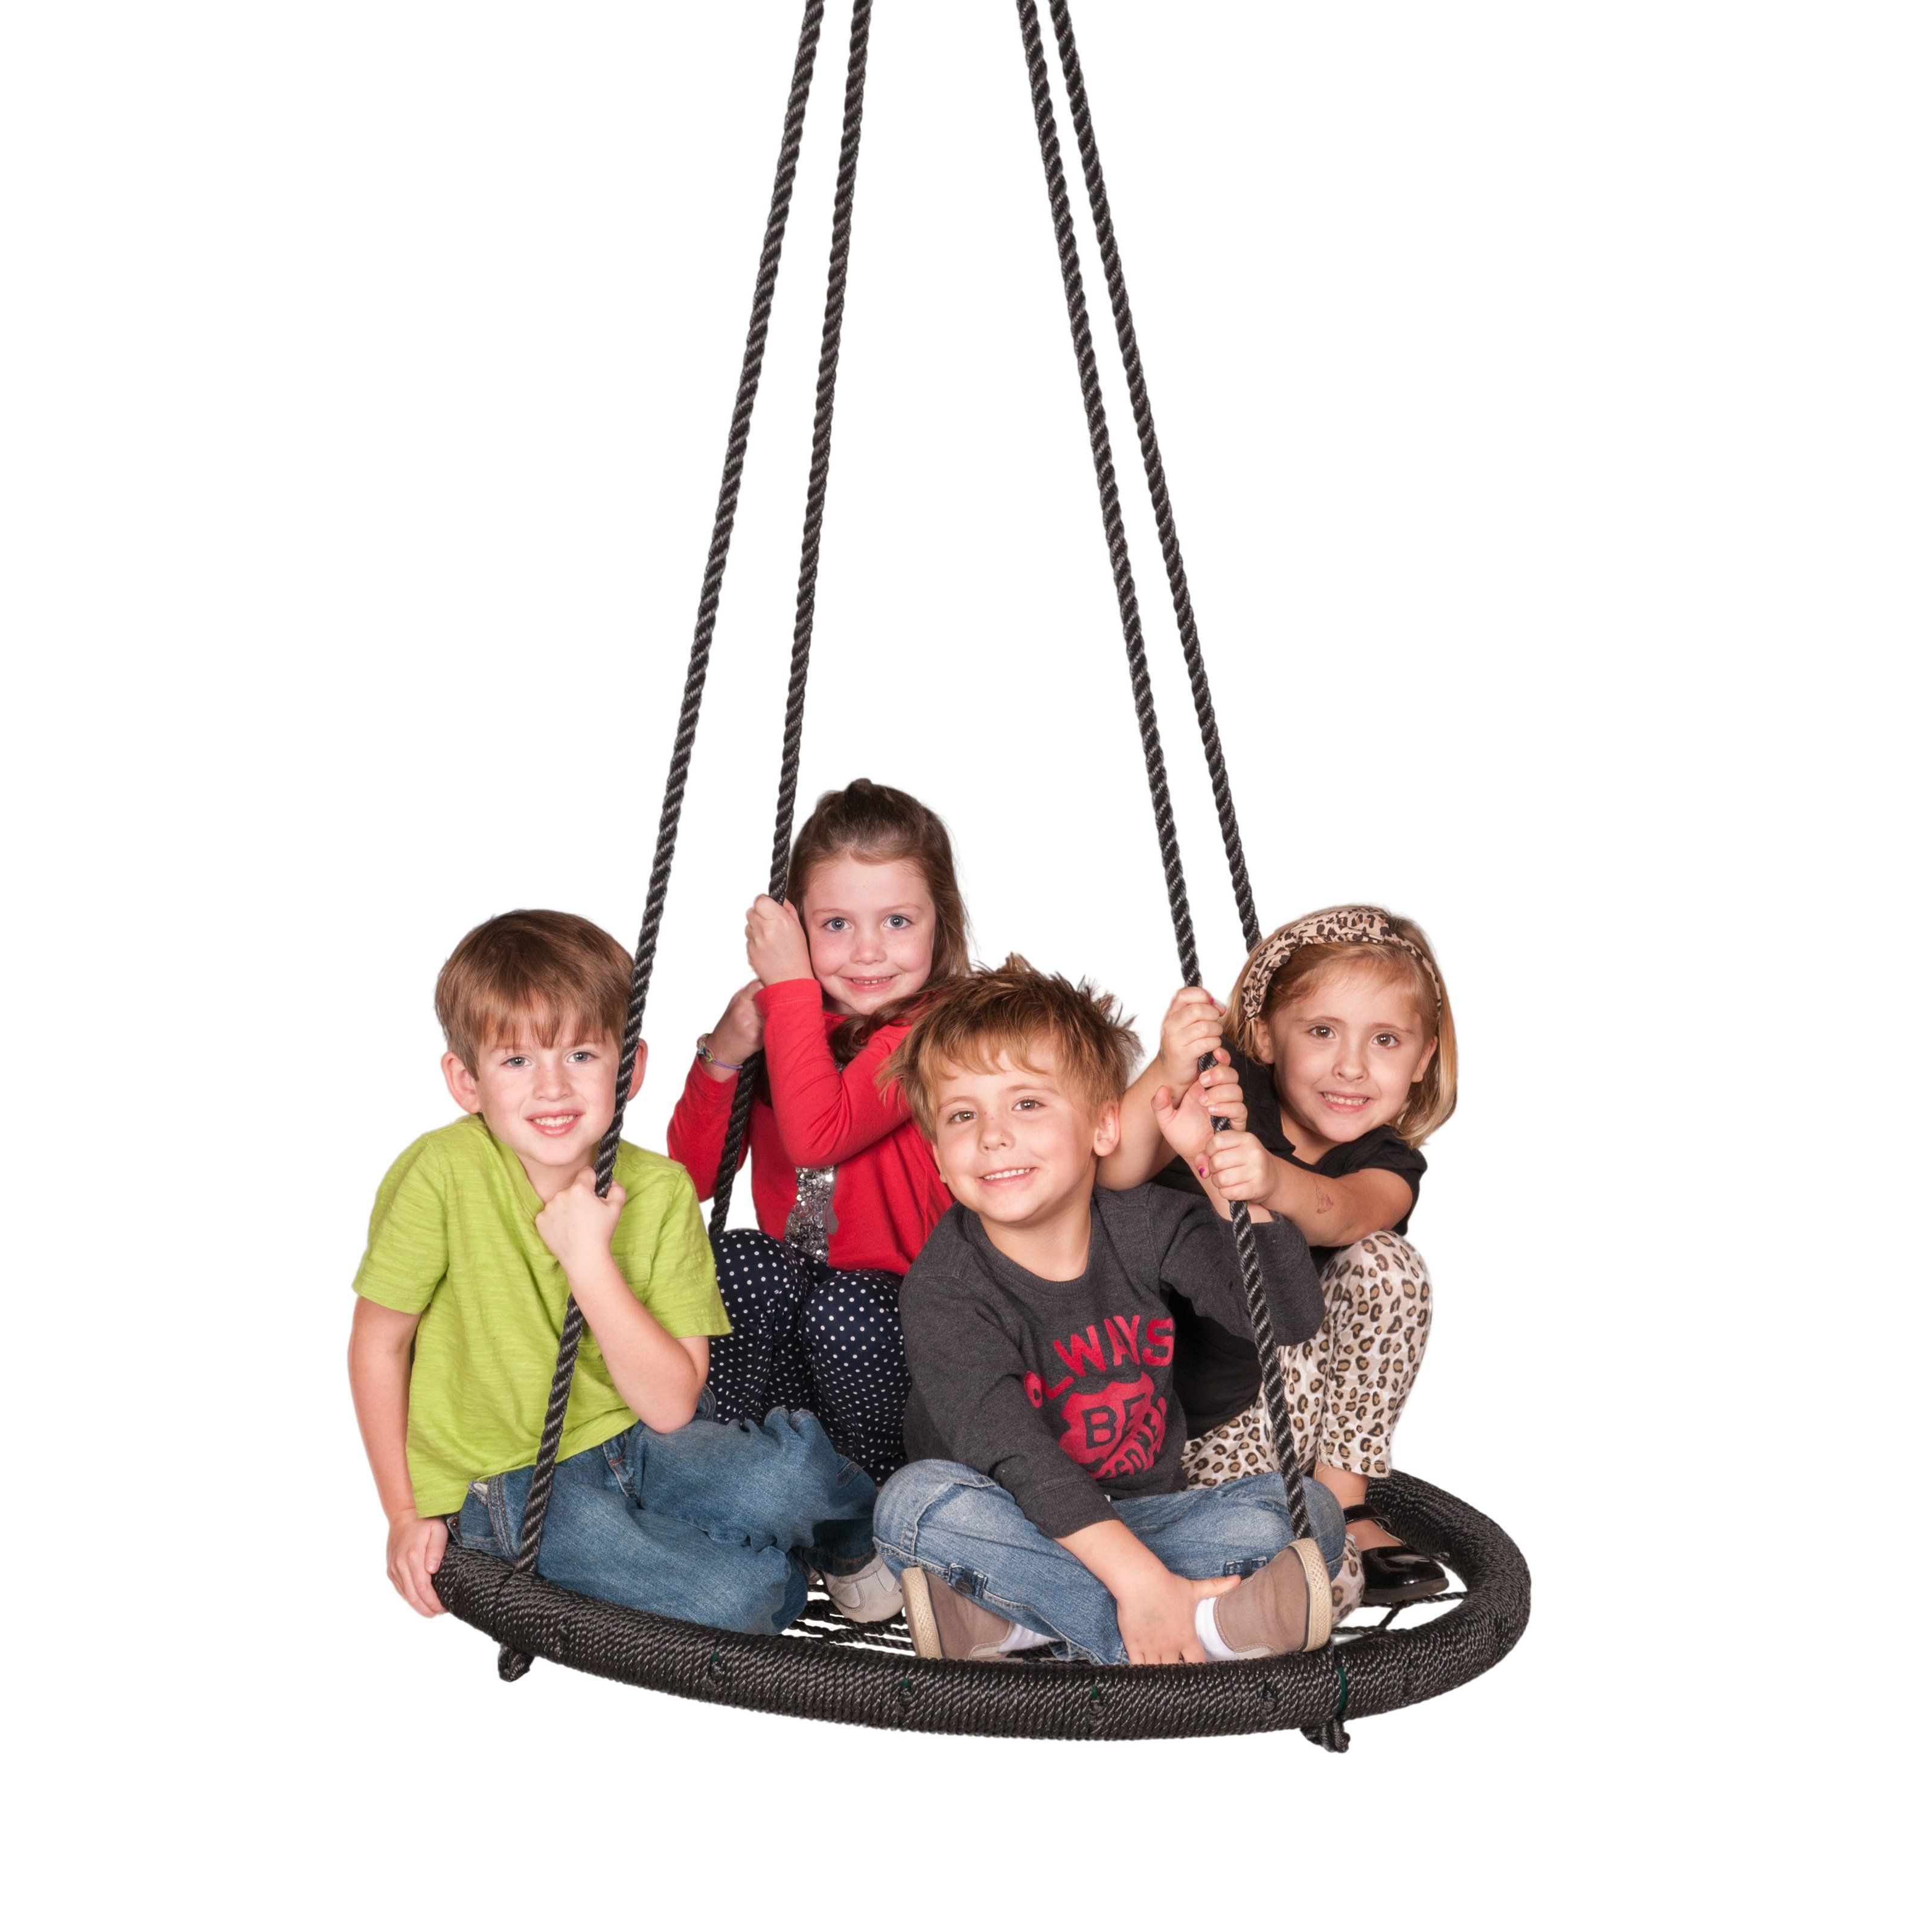 Web Riderz Nest Swing   Take A New Spin On Summertime Swings With The Web  Riderz Nest Swing . This Spacious Swing Provides A Roomy Nest For A Kid U2013  And Even ...